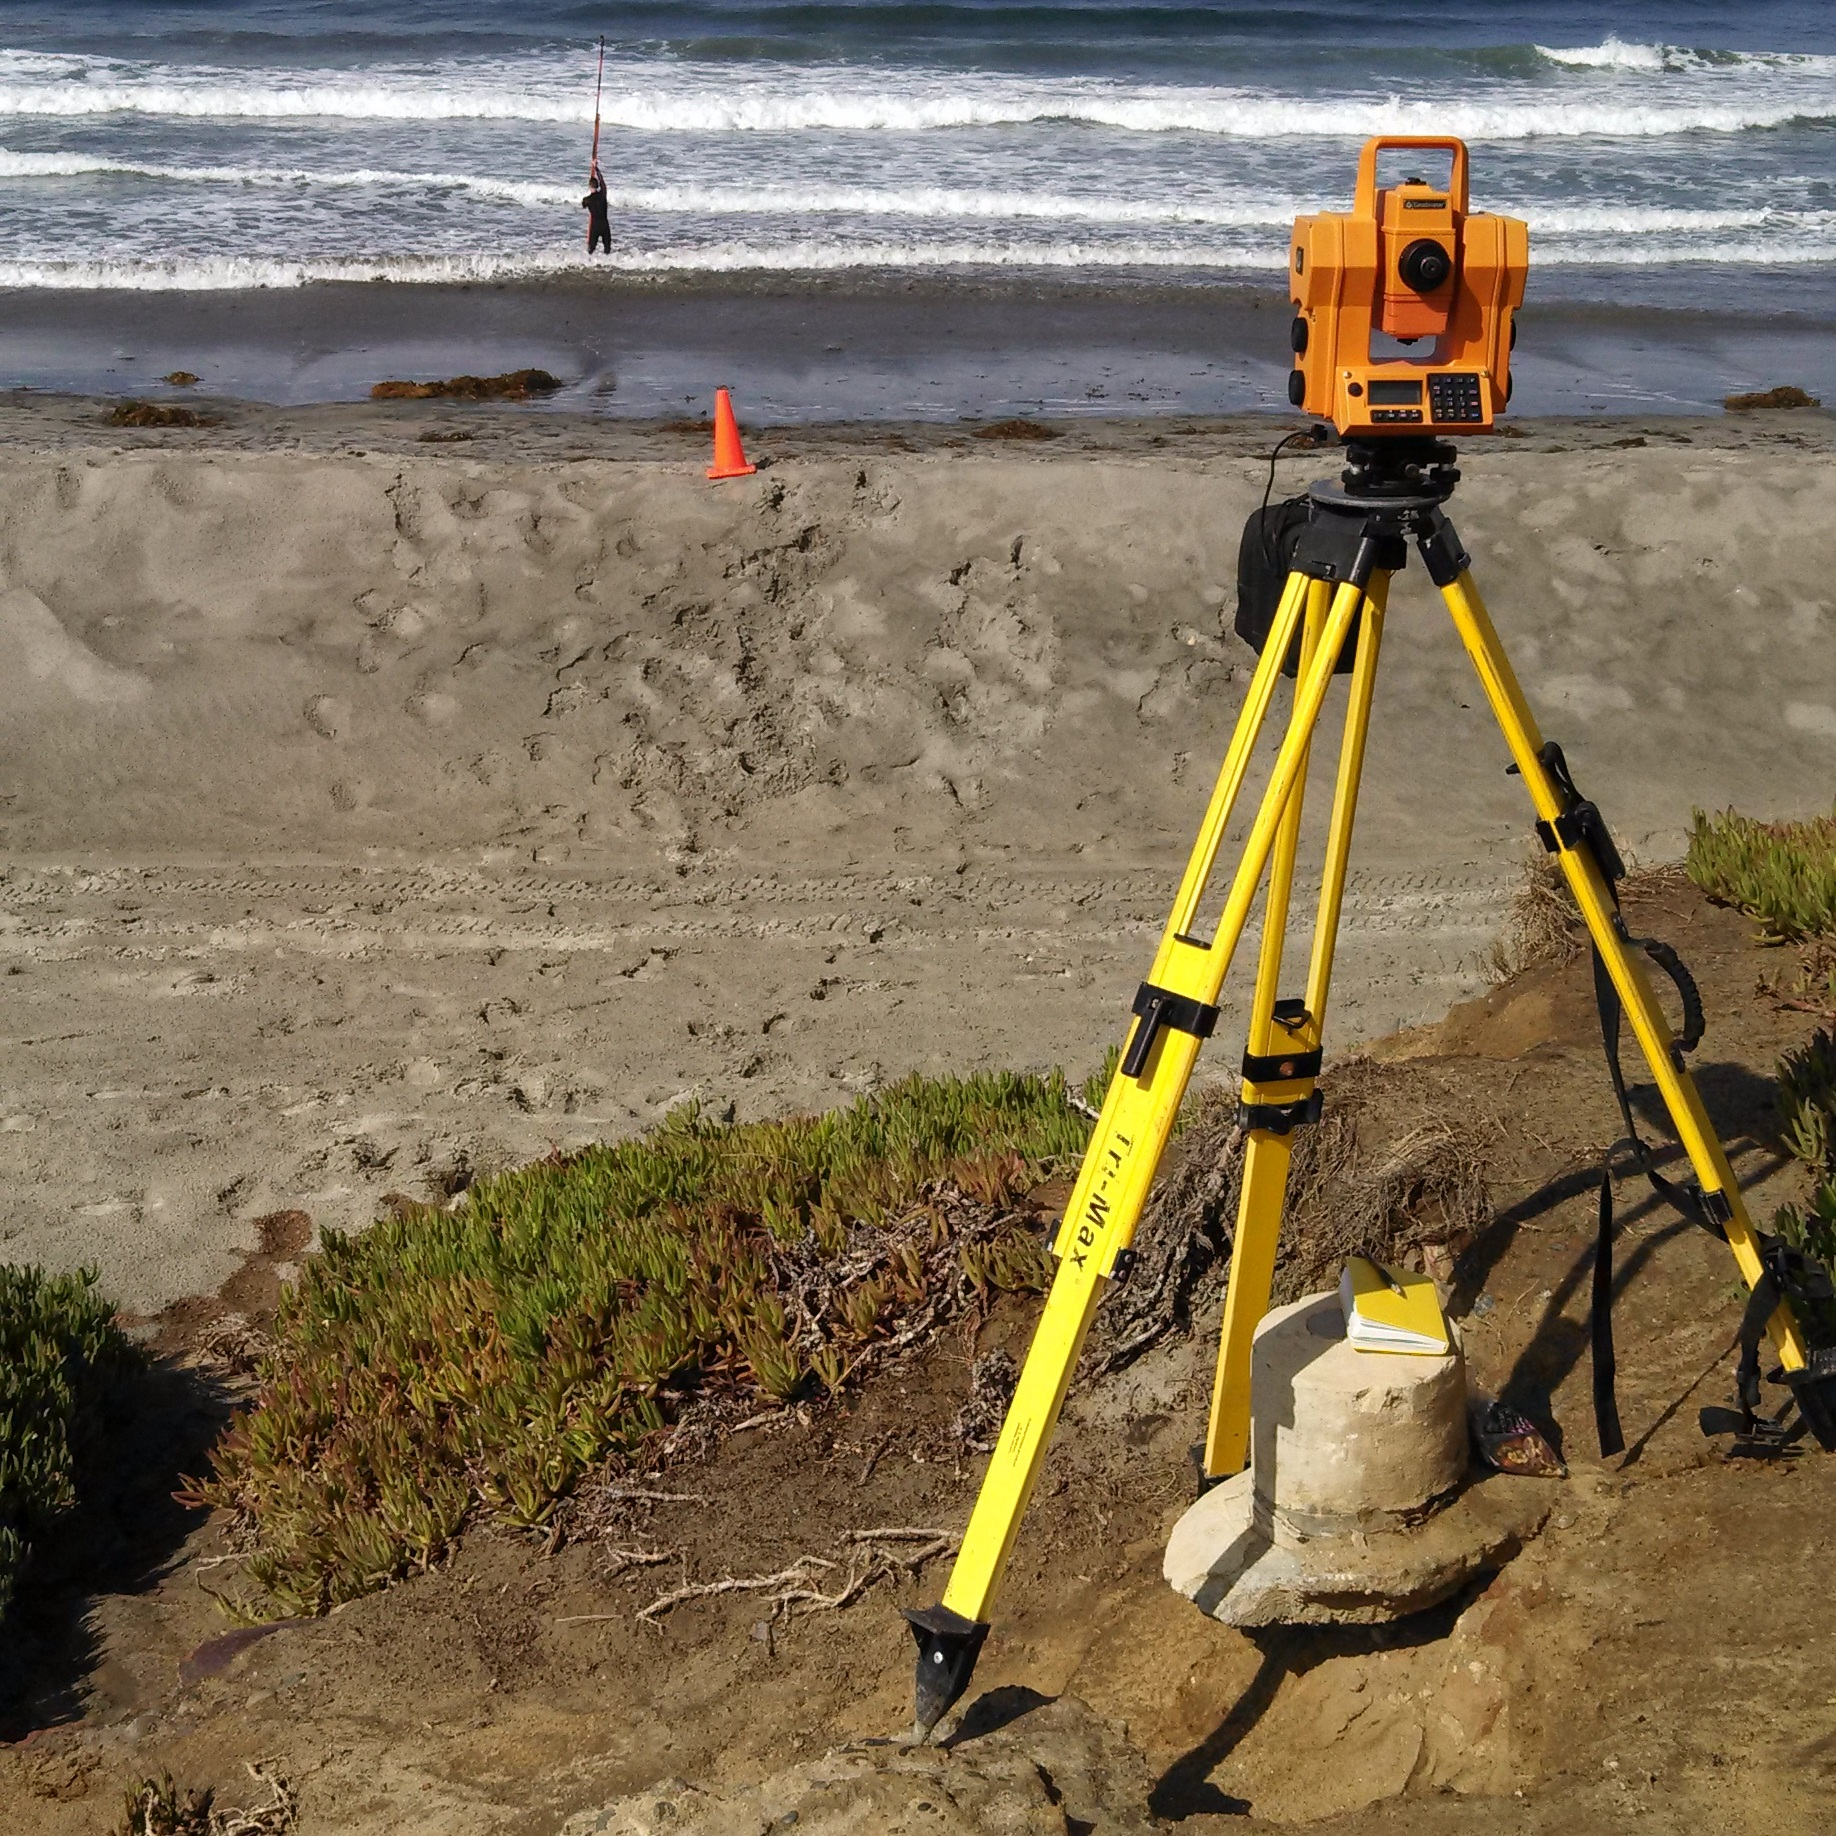 REGIONAL BEACH MONITORING PROGRAM - SAN DIEGO COUNTY